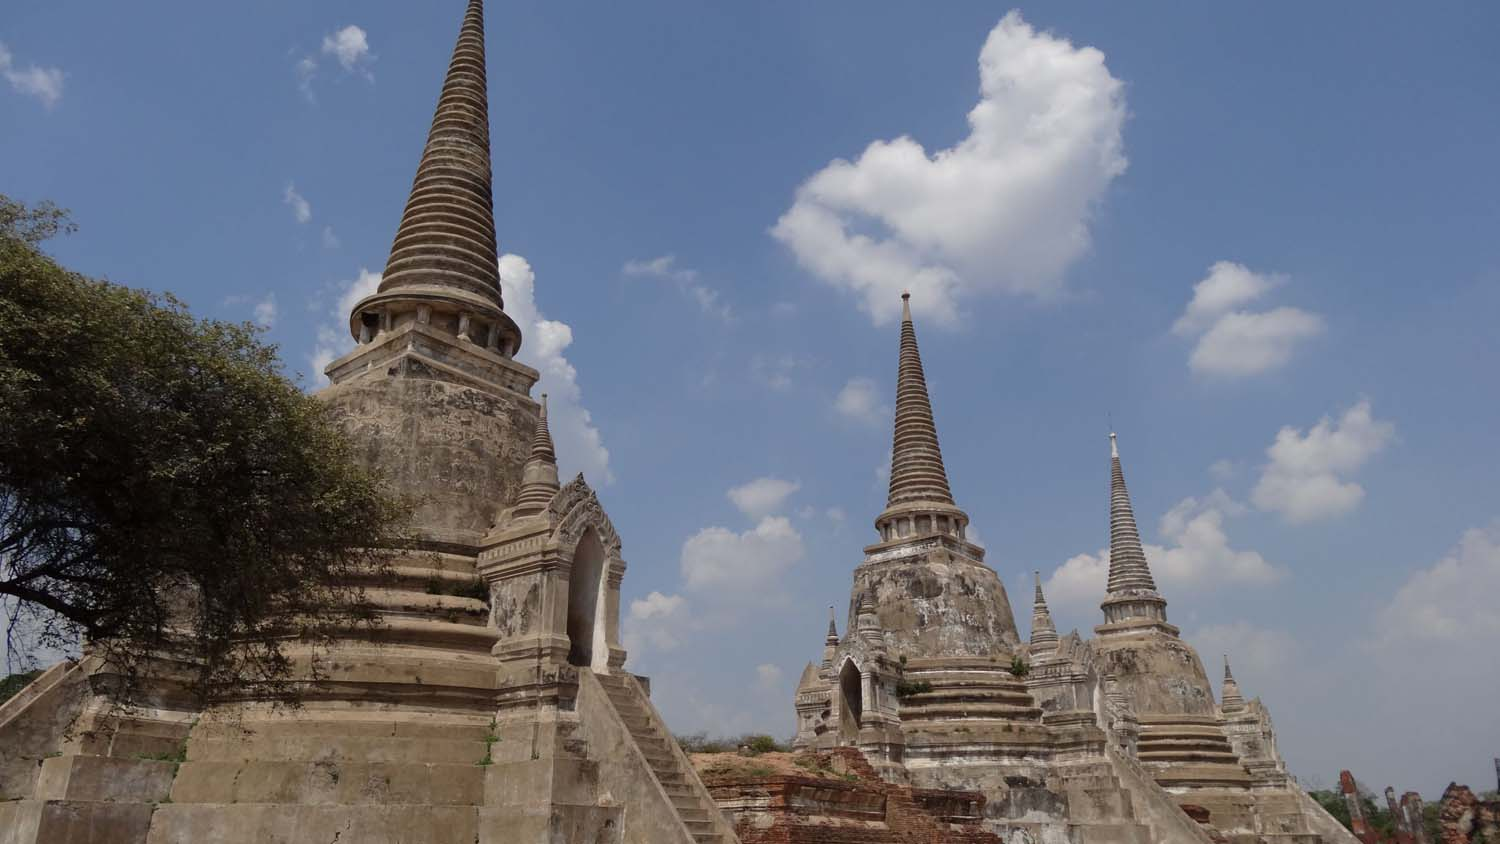 the three stupas